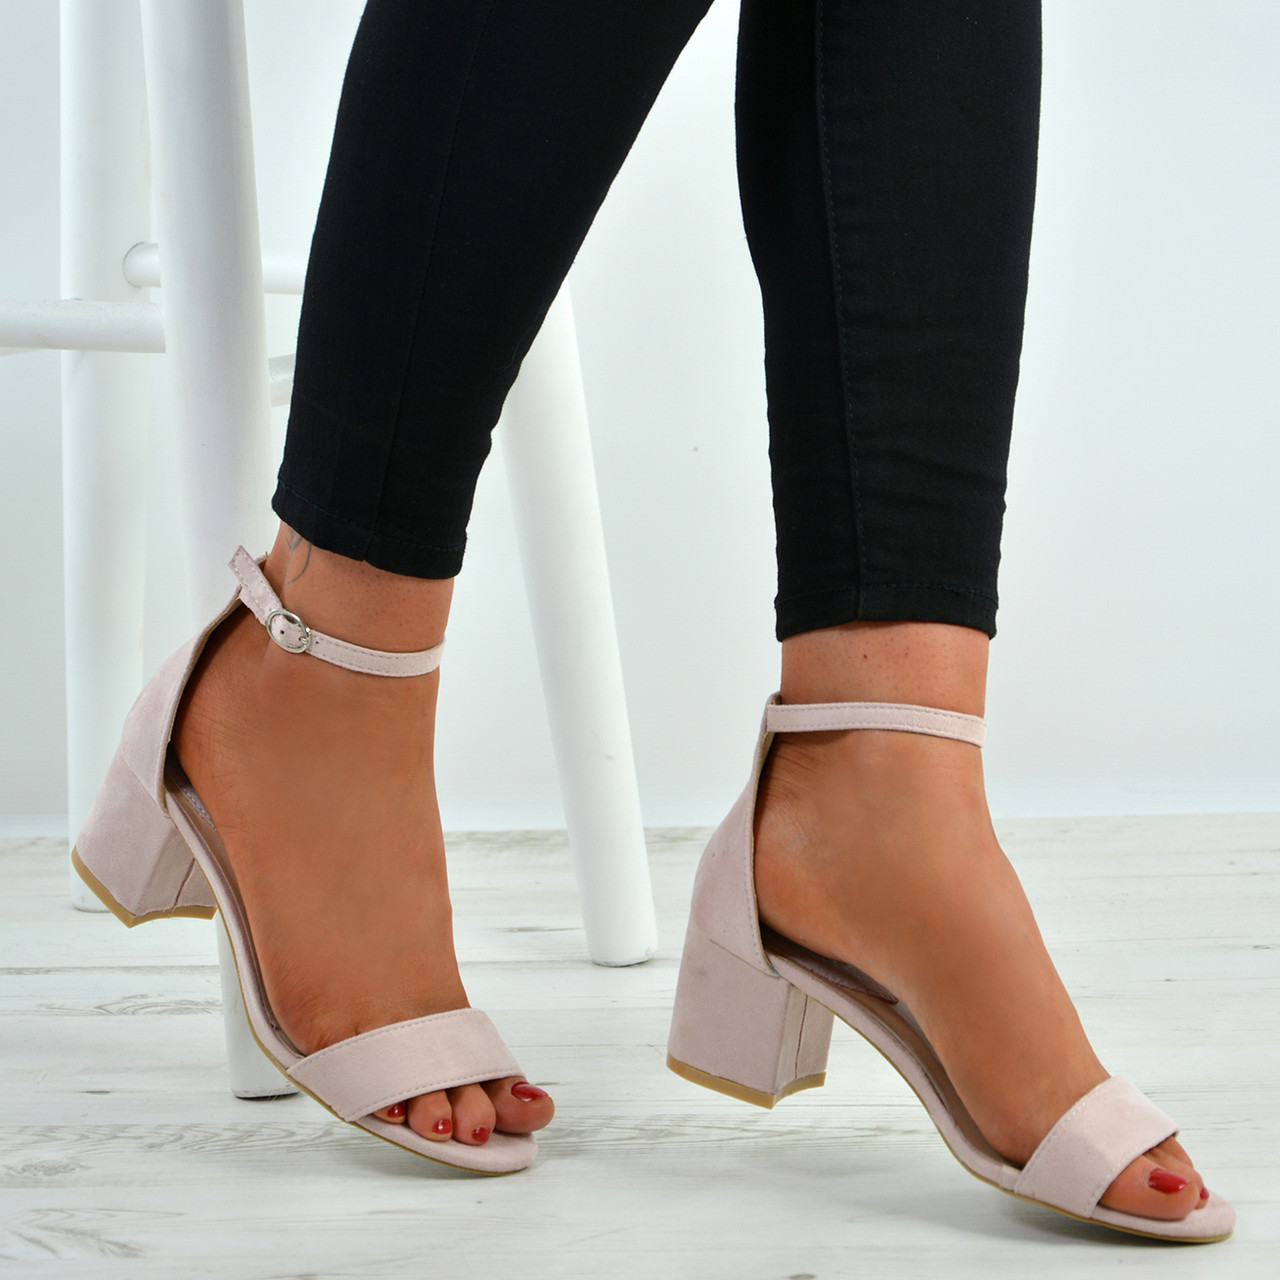 Women Peep Toes Buckle Anke Boots Sandals Lady Block Mid Heels Summer Shoes Size Clothes, Shoes & Accessories Women's Heels